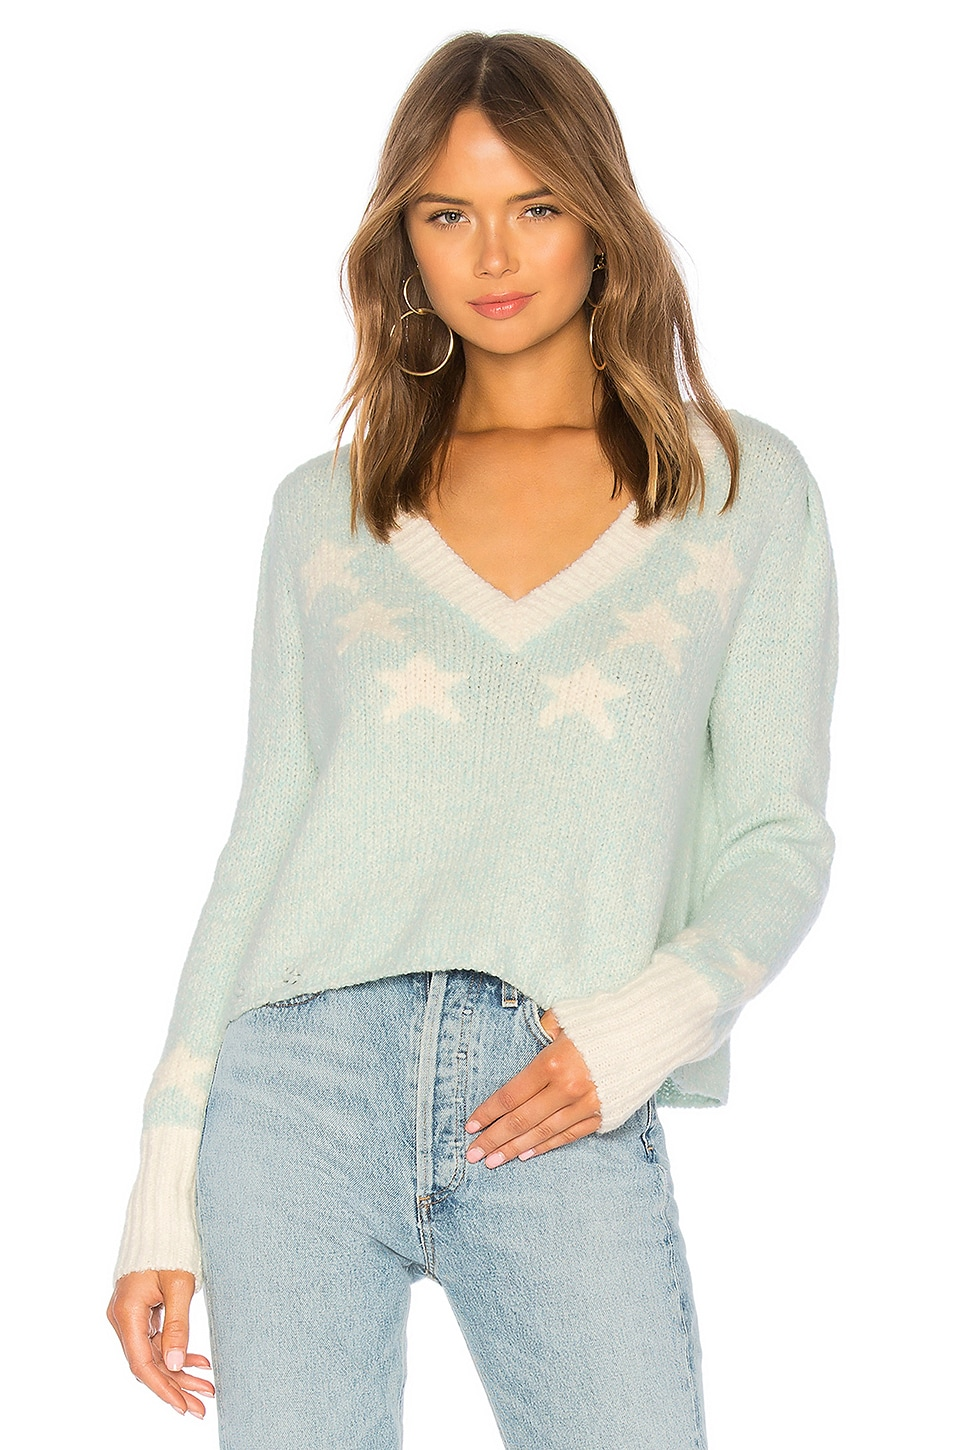 WILDFOX COUTURE Star Girl Ace Sweater in Teal